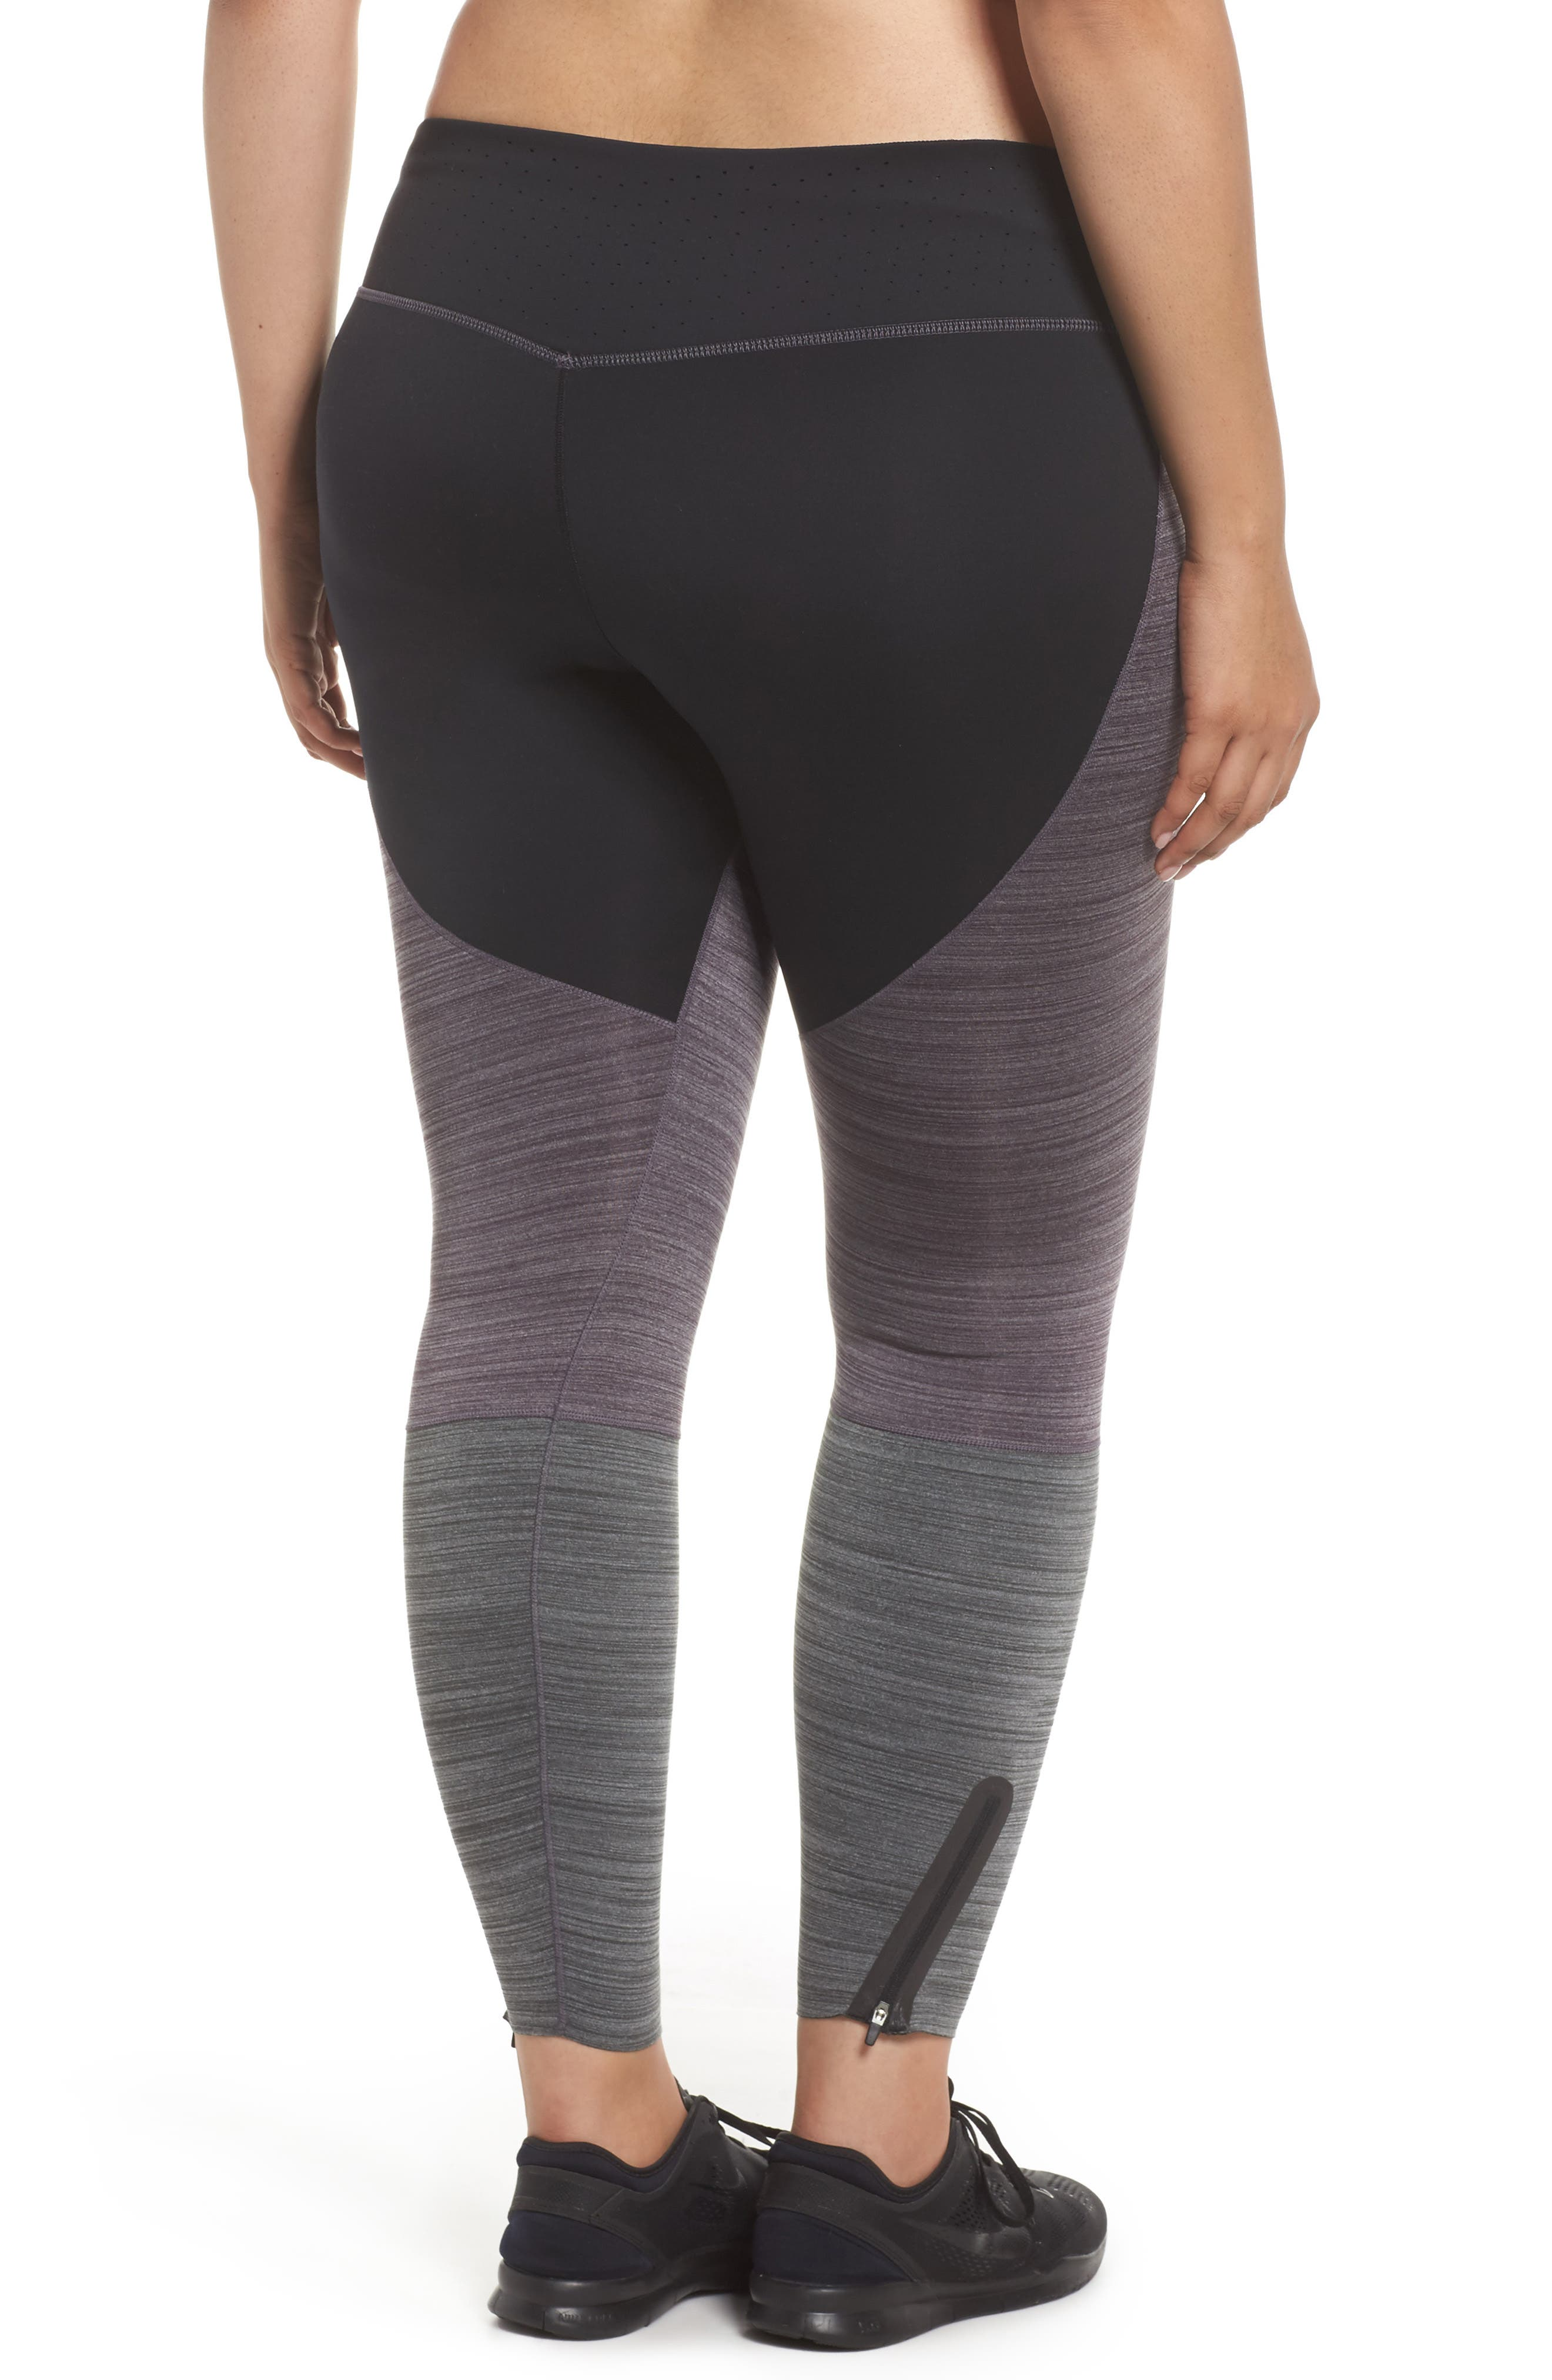 Legendary Training Tights,                             Alternate thumbnail 4, color,